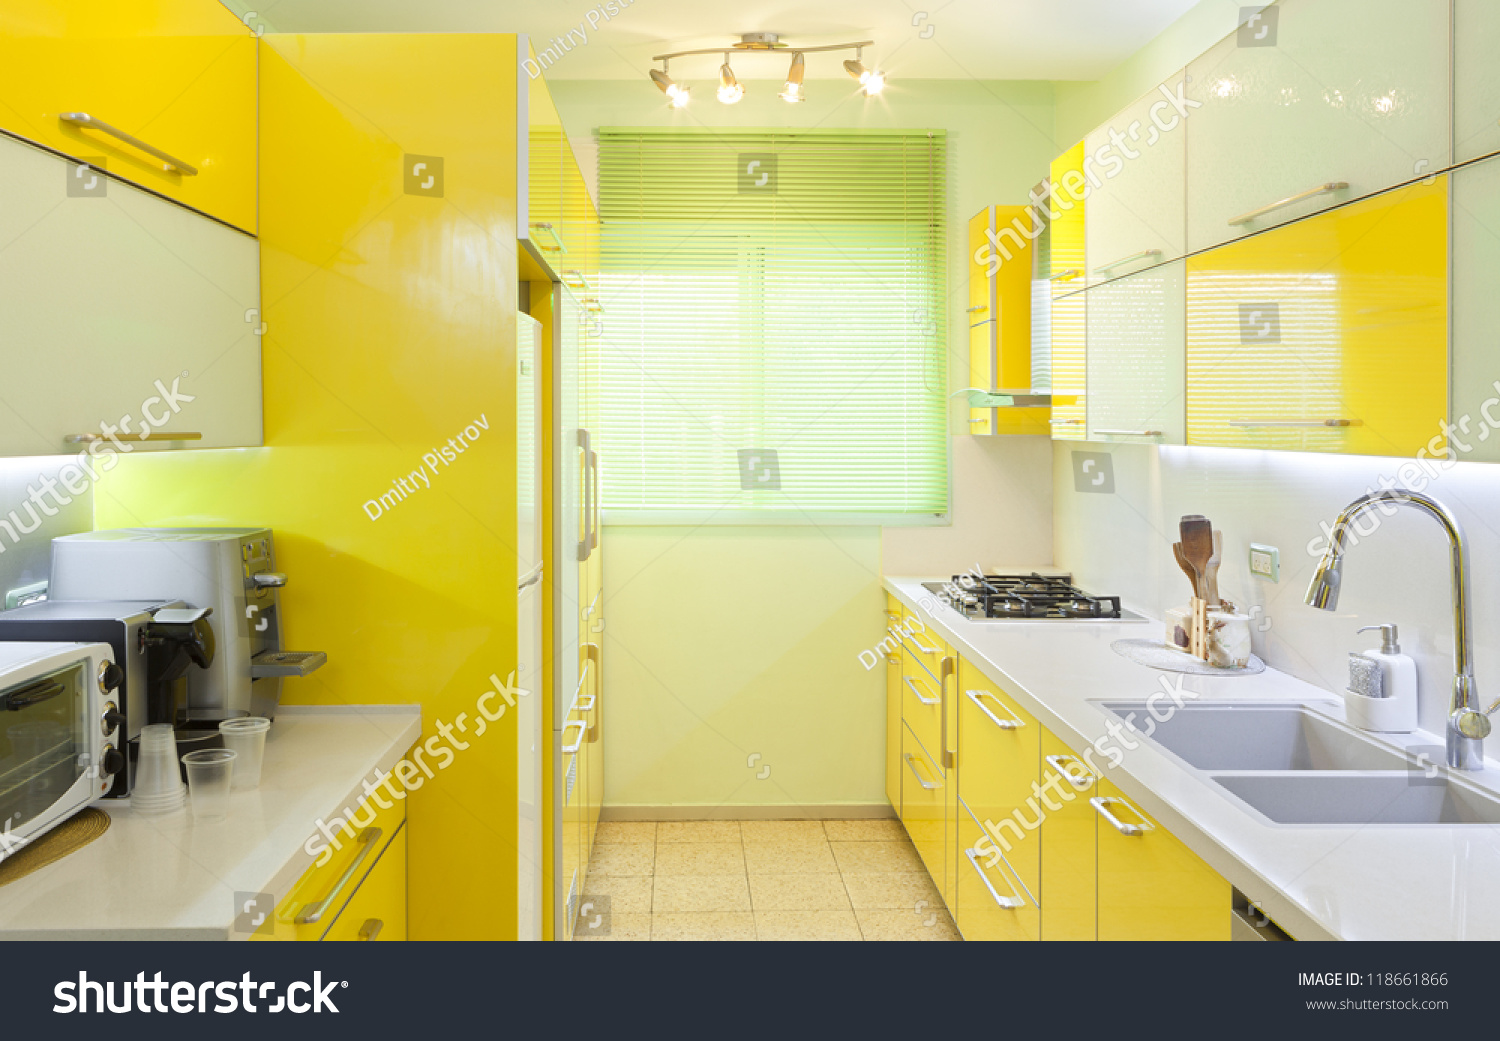 Modern Design Kitchen With Yellow And Green Elements Stock Photo 118661866 Shutterstock